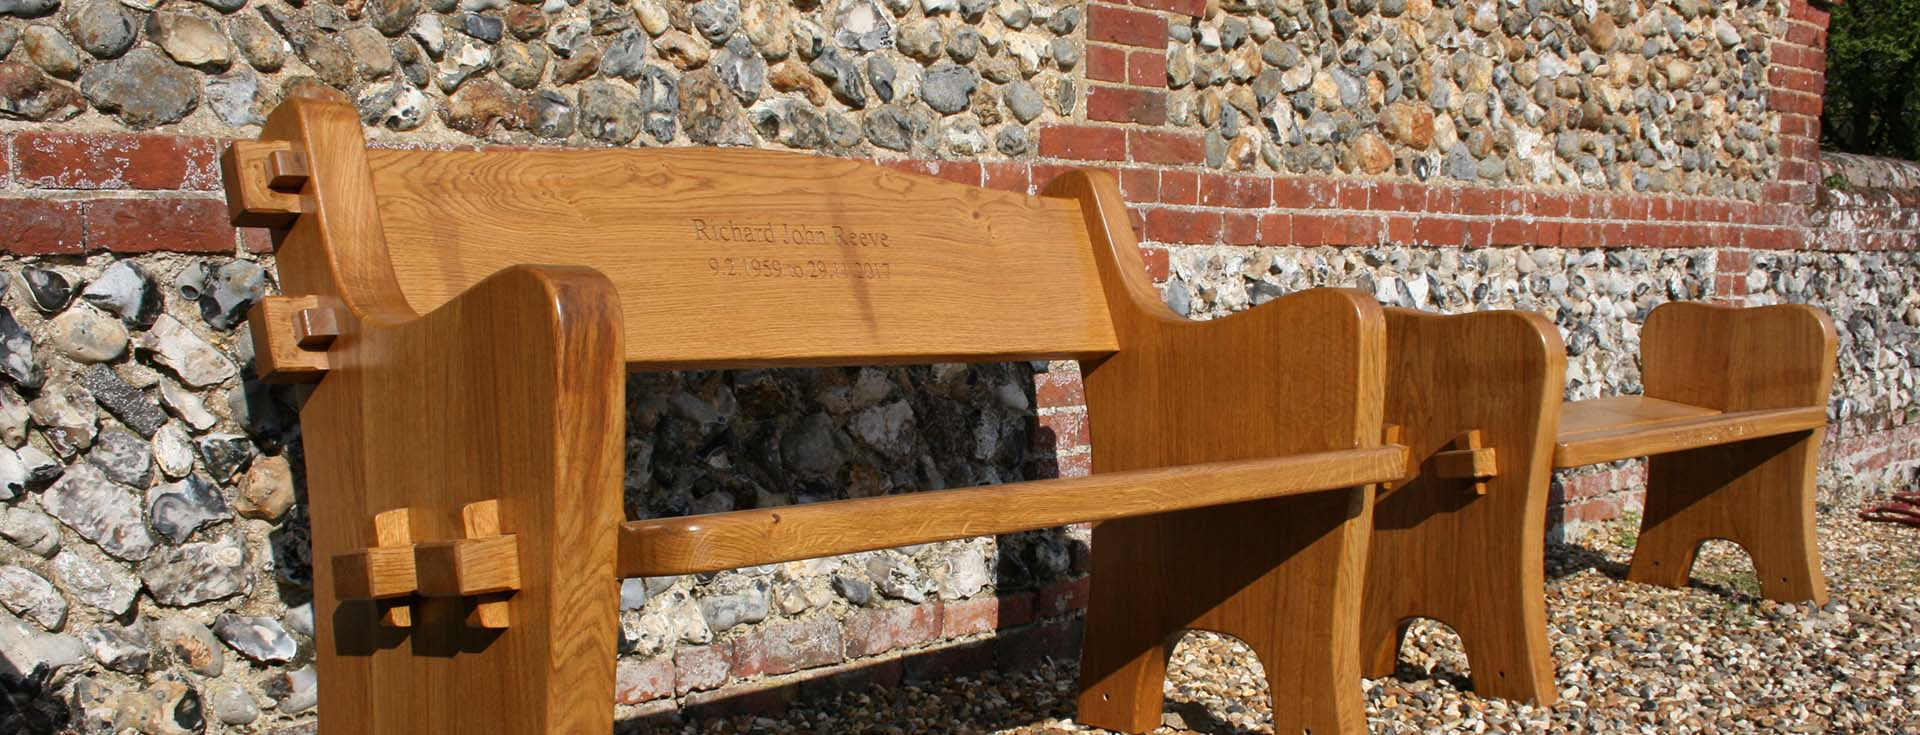 Oak Bench made by hand by Harry Stebbing of Norfolk